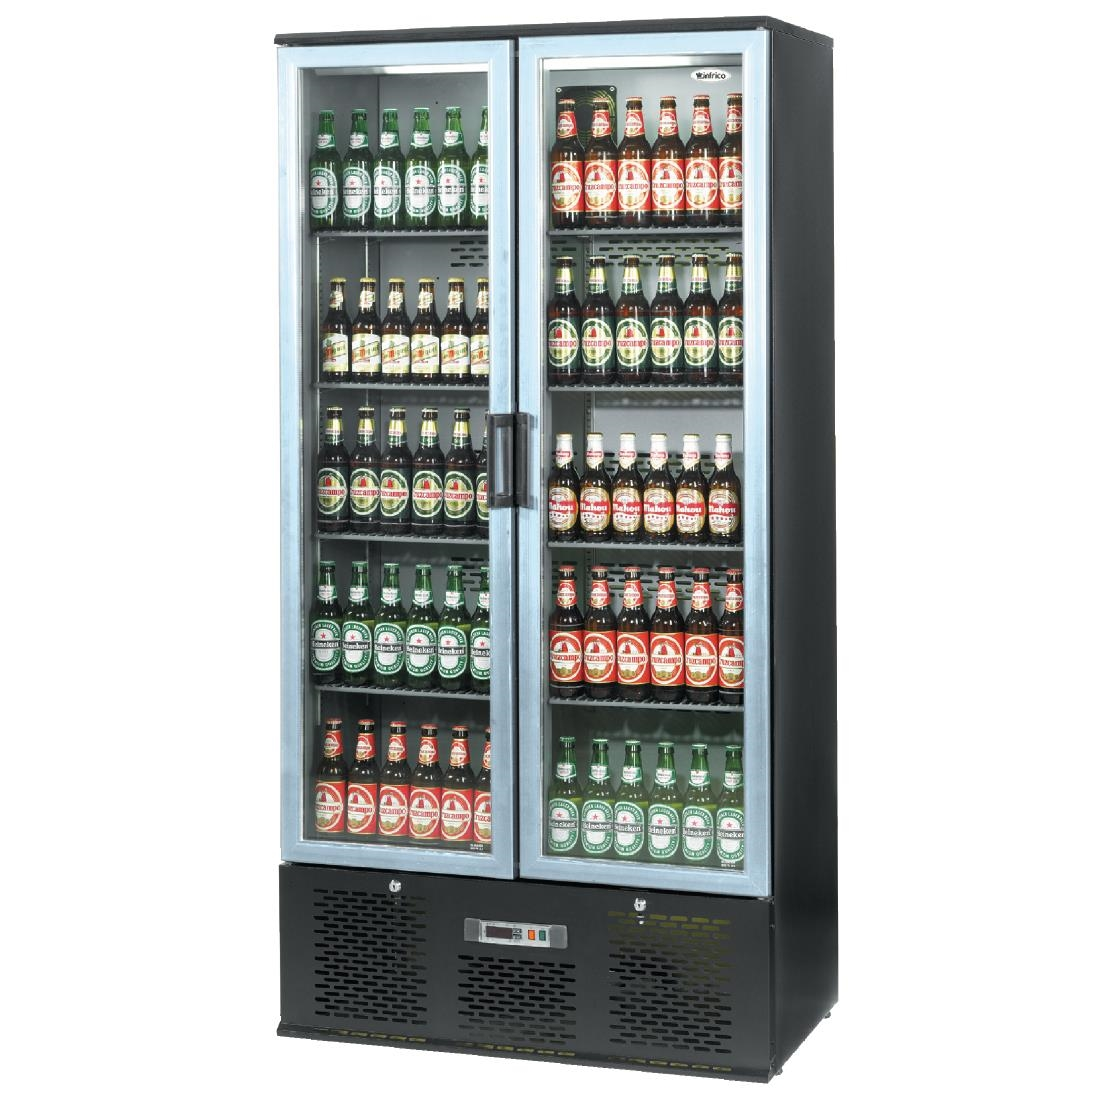 Image of Infrico Upright Back Bar Cooler with Hinged Doors in Black and Steel ZXS20